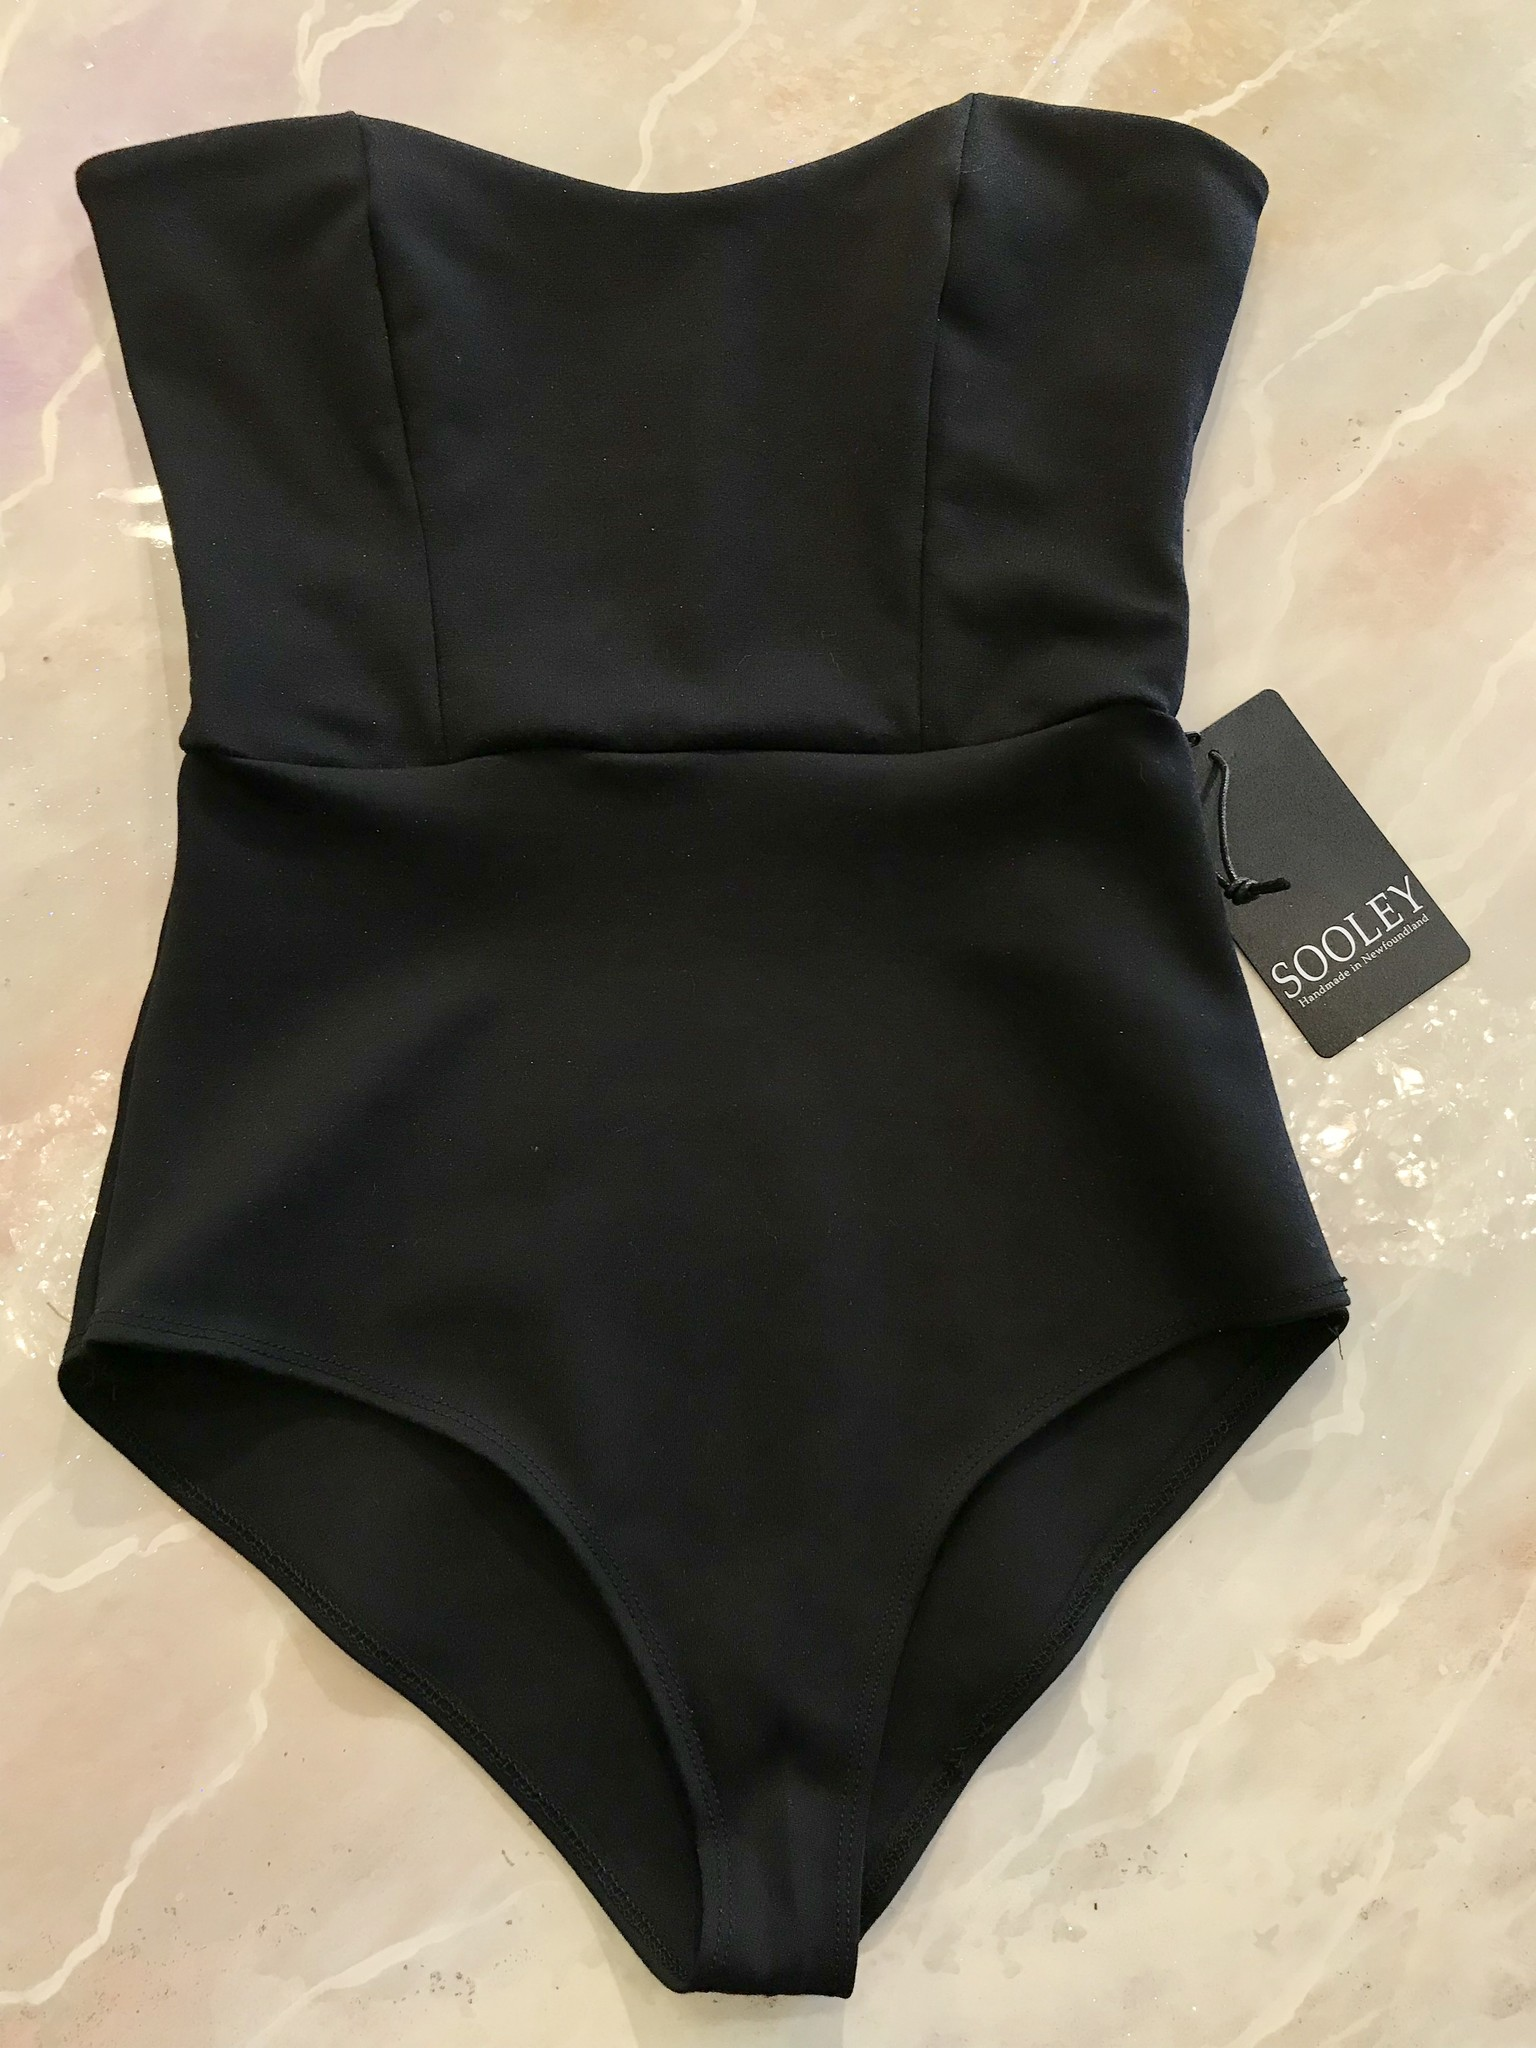 Sooley Designs Sweetheart Baker Bodysuit